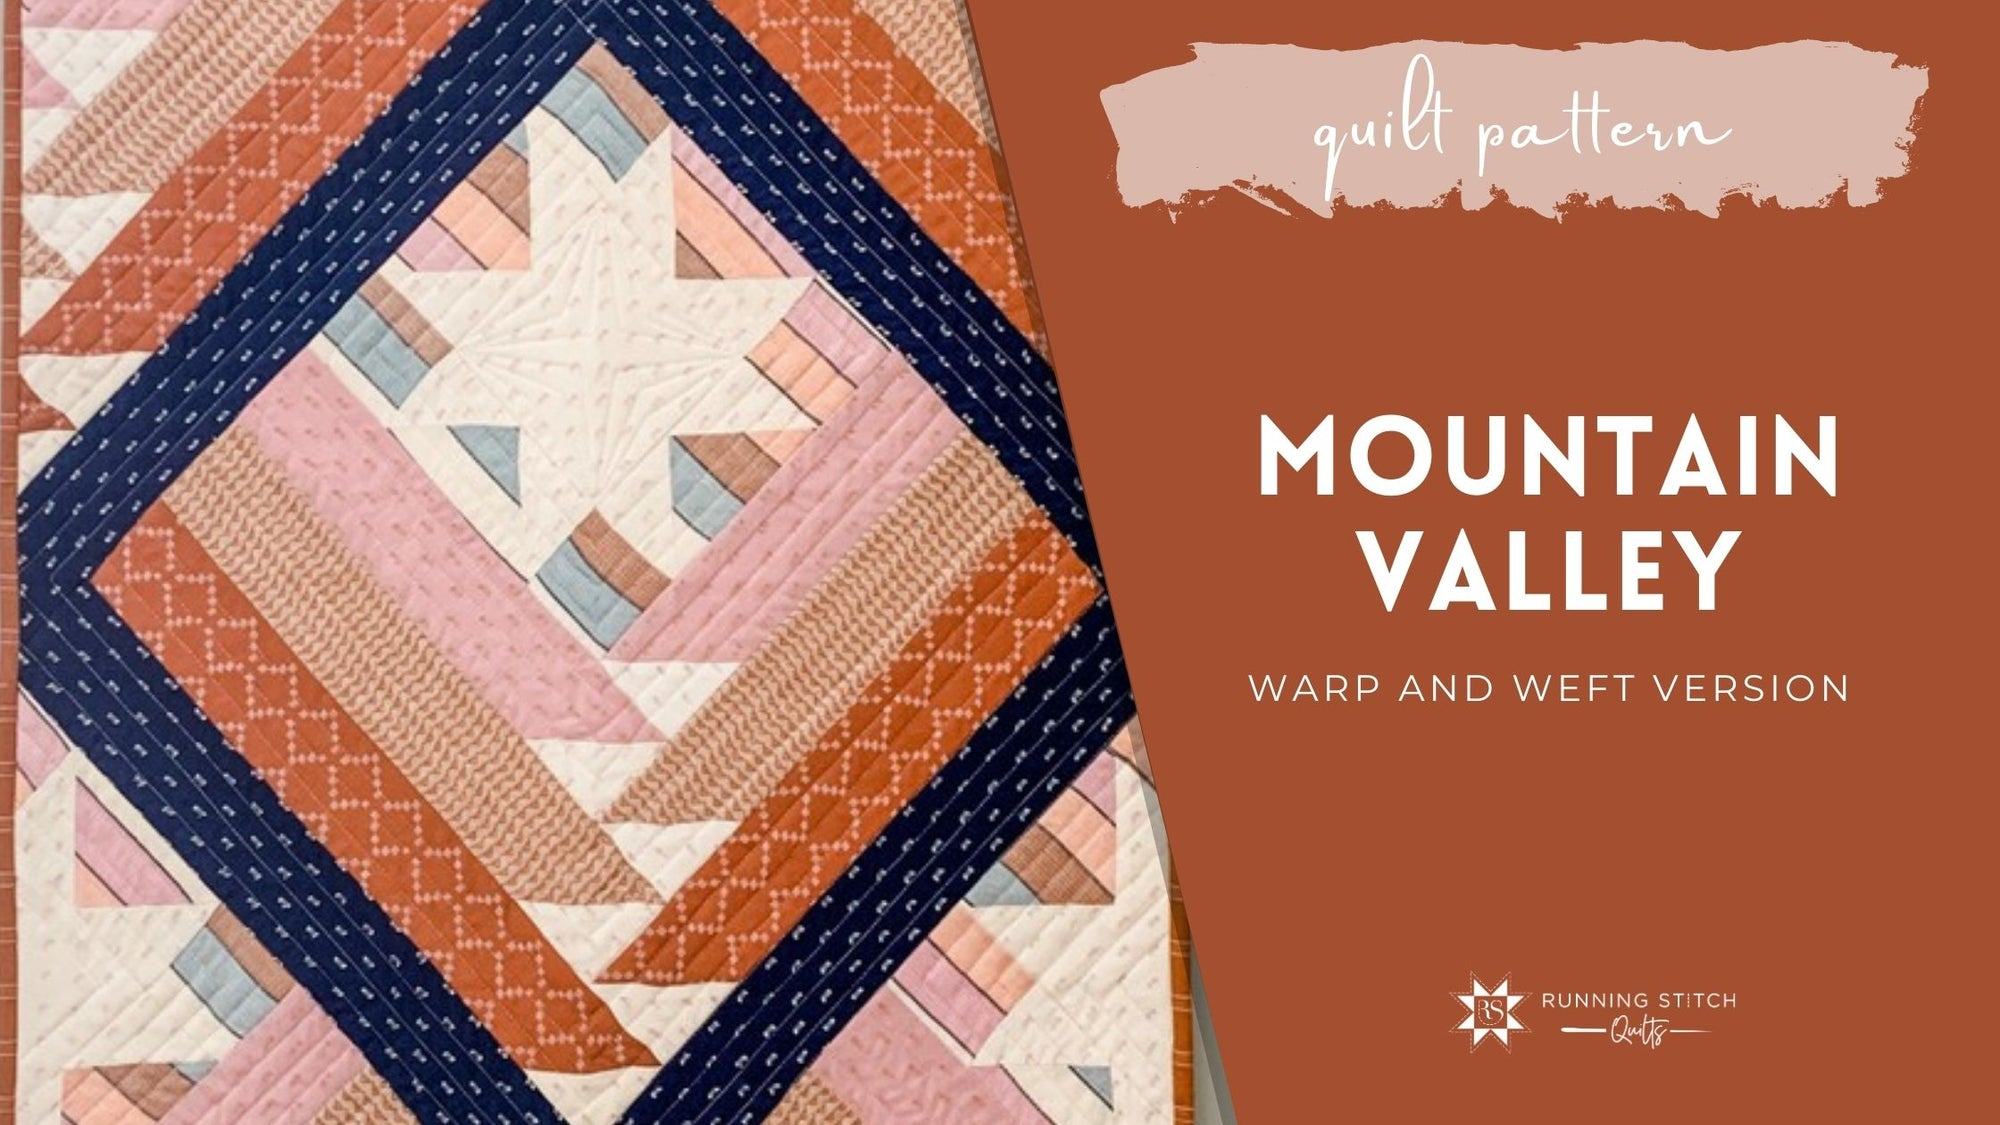 Mountain Valley Quilt - Warp and Weft Version